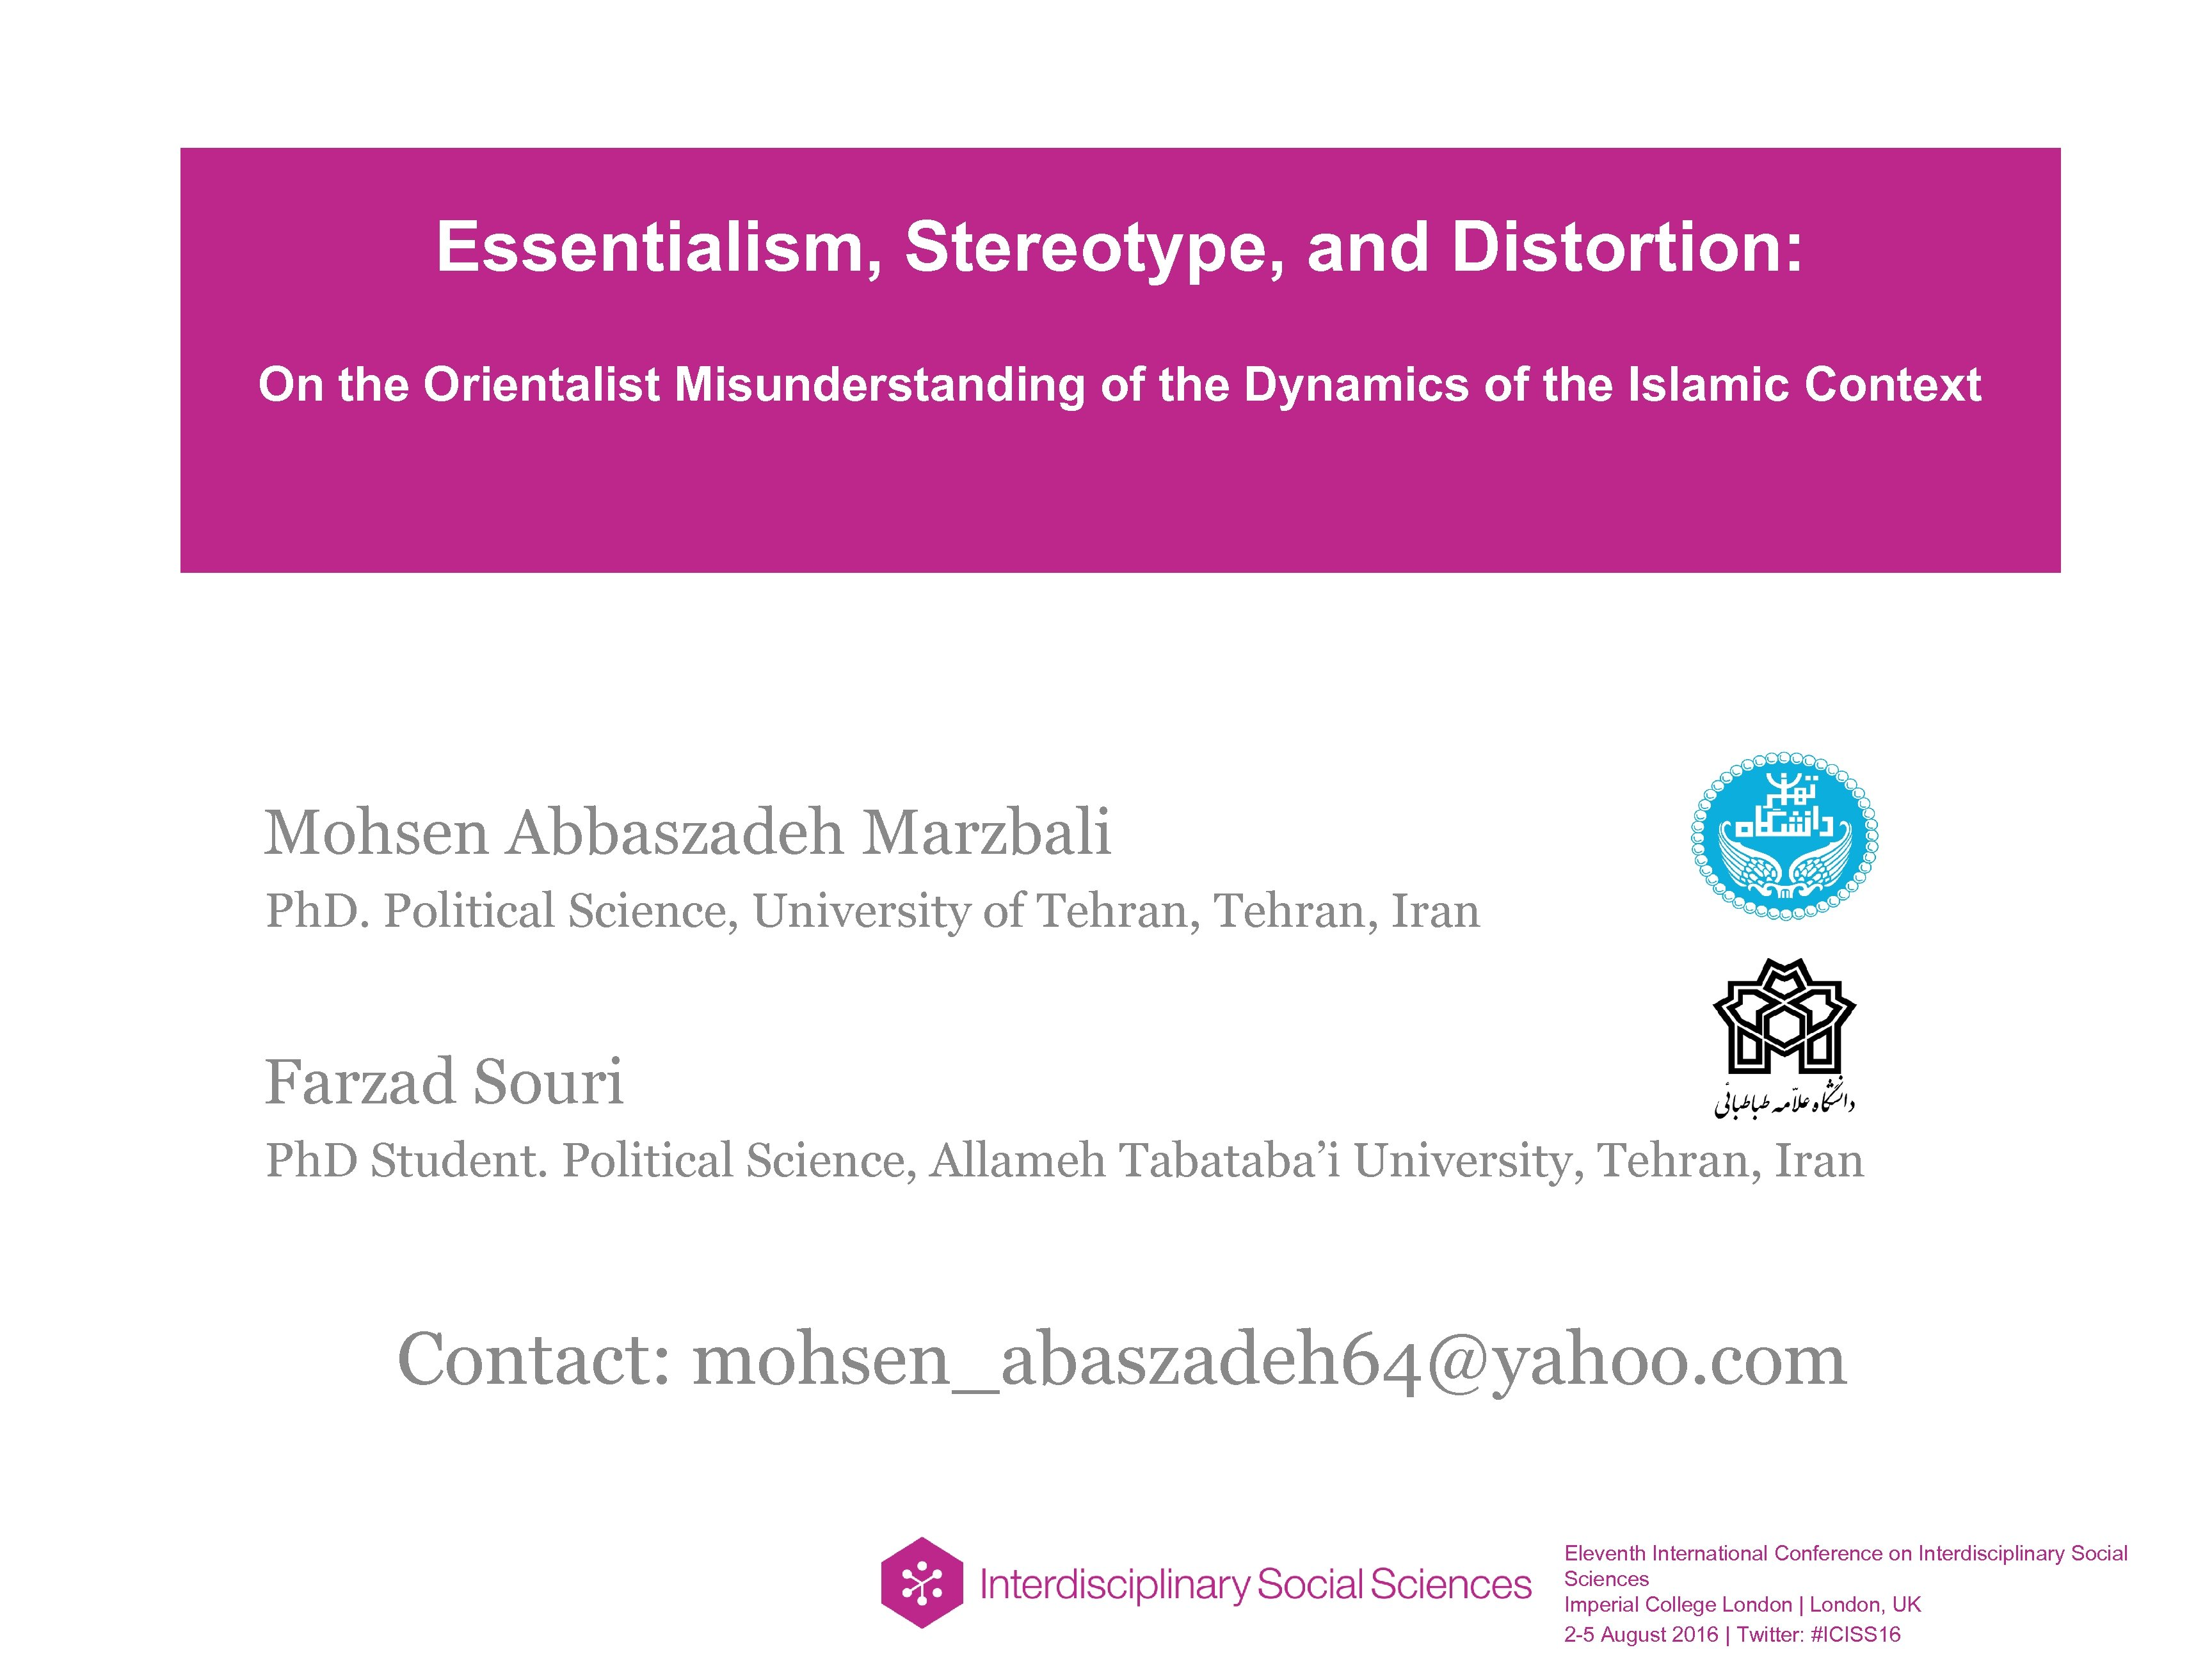 Essentialism, Stereotype, and Distortion: On the Orientalist Misunderstanding of the Dynamics of the Islamic